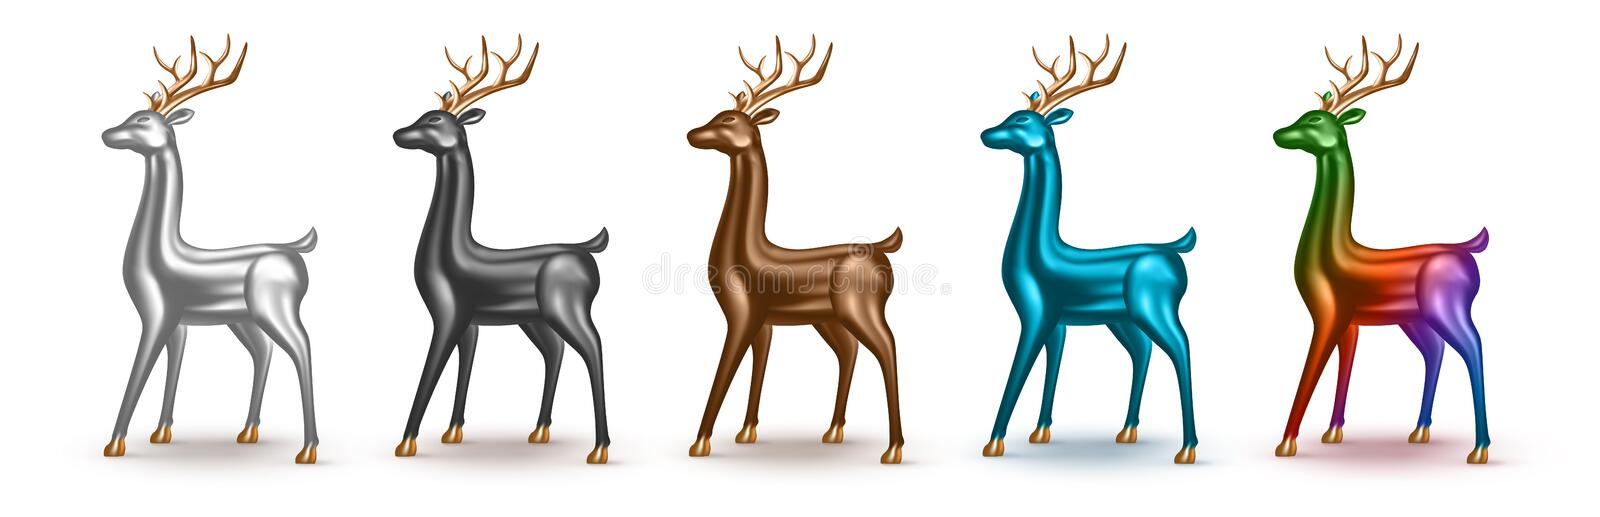 Happy New Year and Merry Christmas. Set of realistic metallic 3d deer with different color. royalty free stock photography